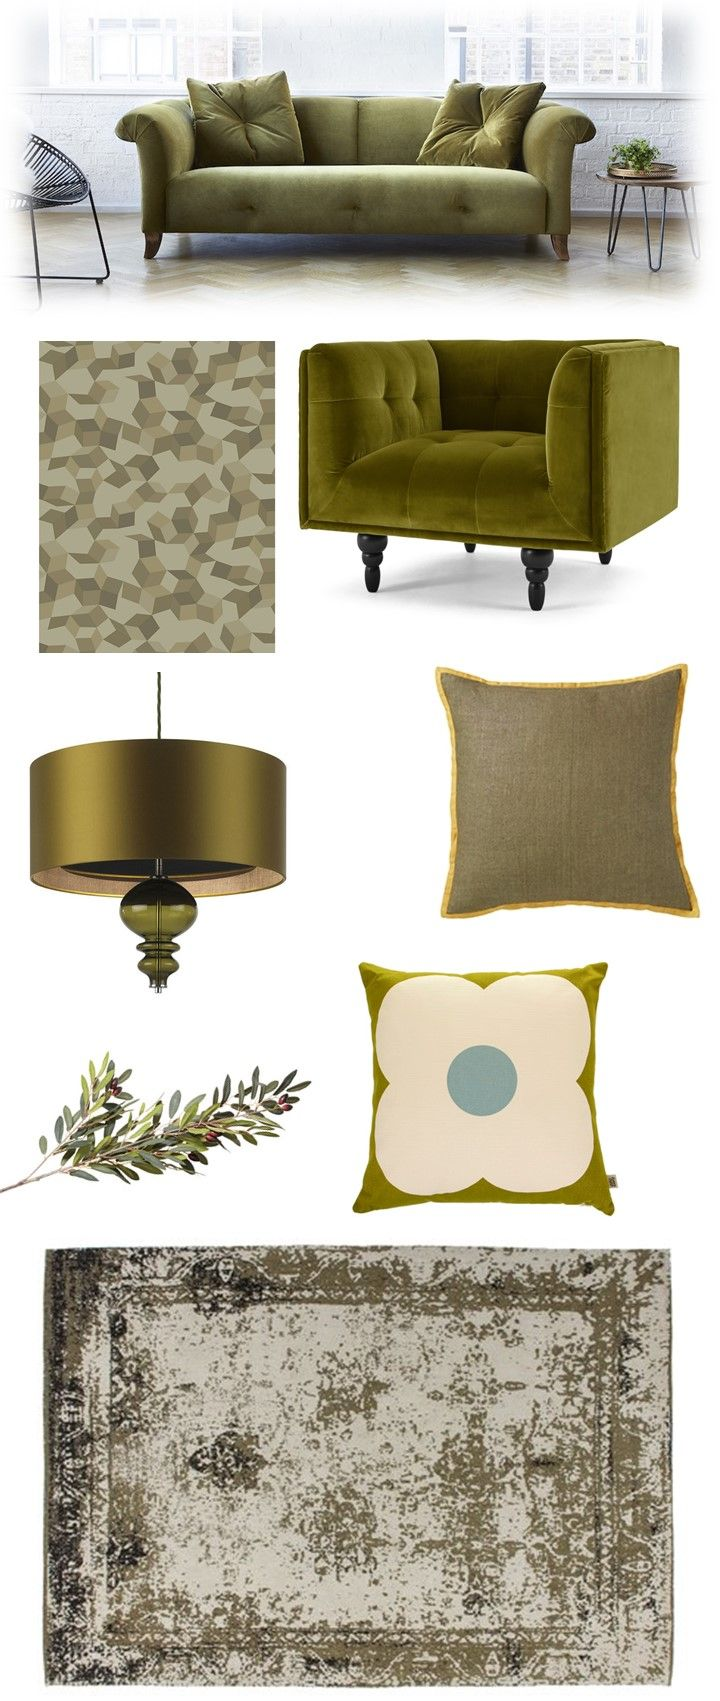 Olive Green Living Room Ideas | Green living room ideas, Green ...